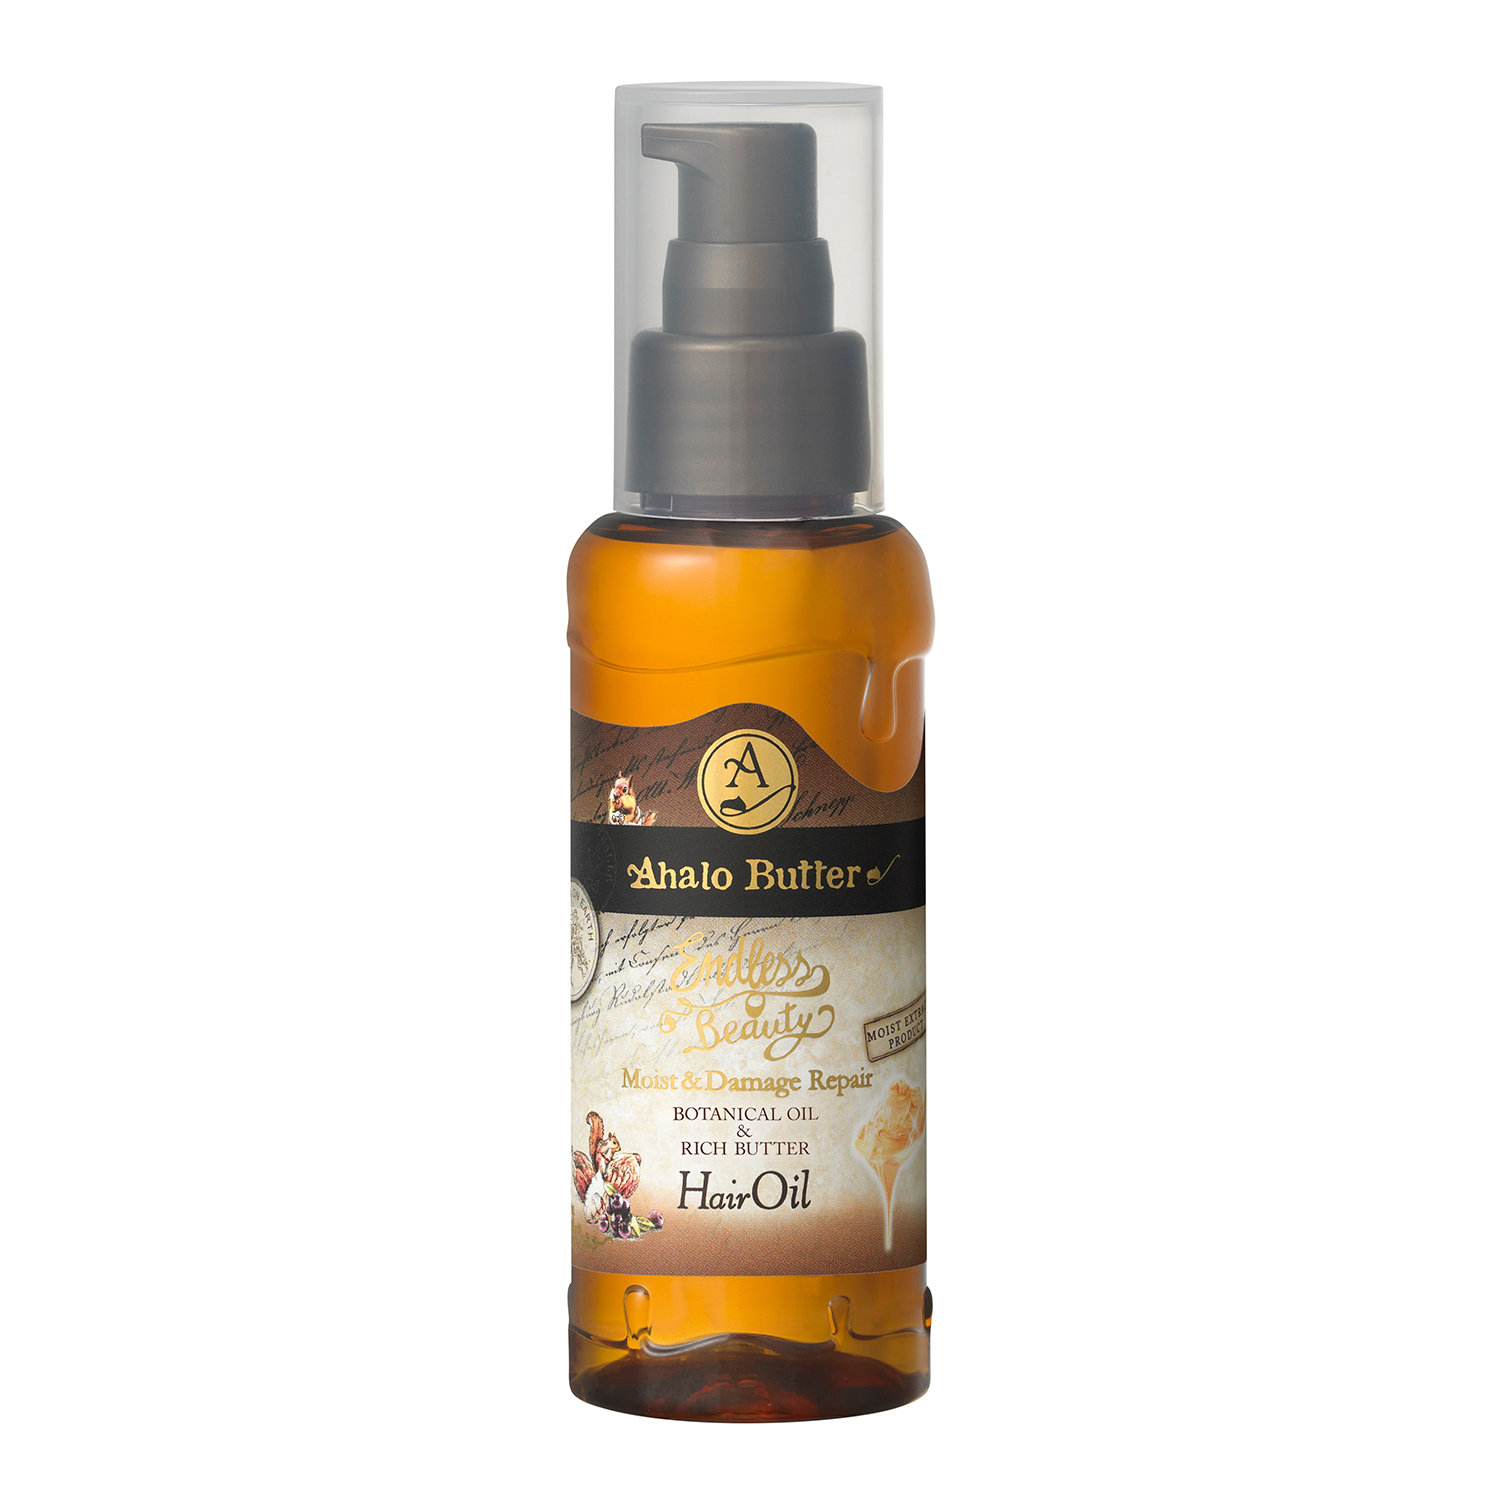 Special, rich hair oil infused with 21 different oils. Delivers hydration and shine without oiliness to improve manageability and enhance smoothness.*Imported from JapanNet Weight: 95 ml / 3.21 oz.